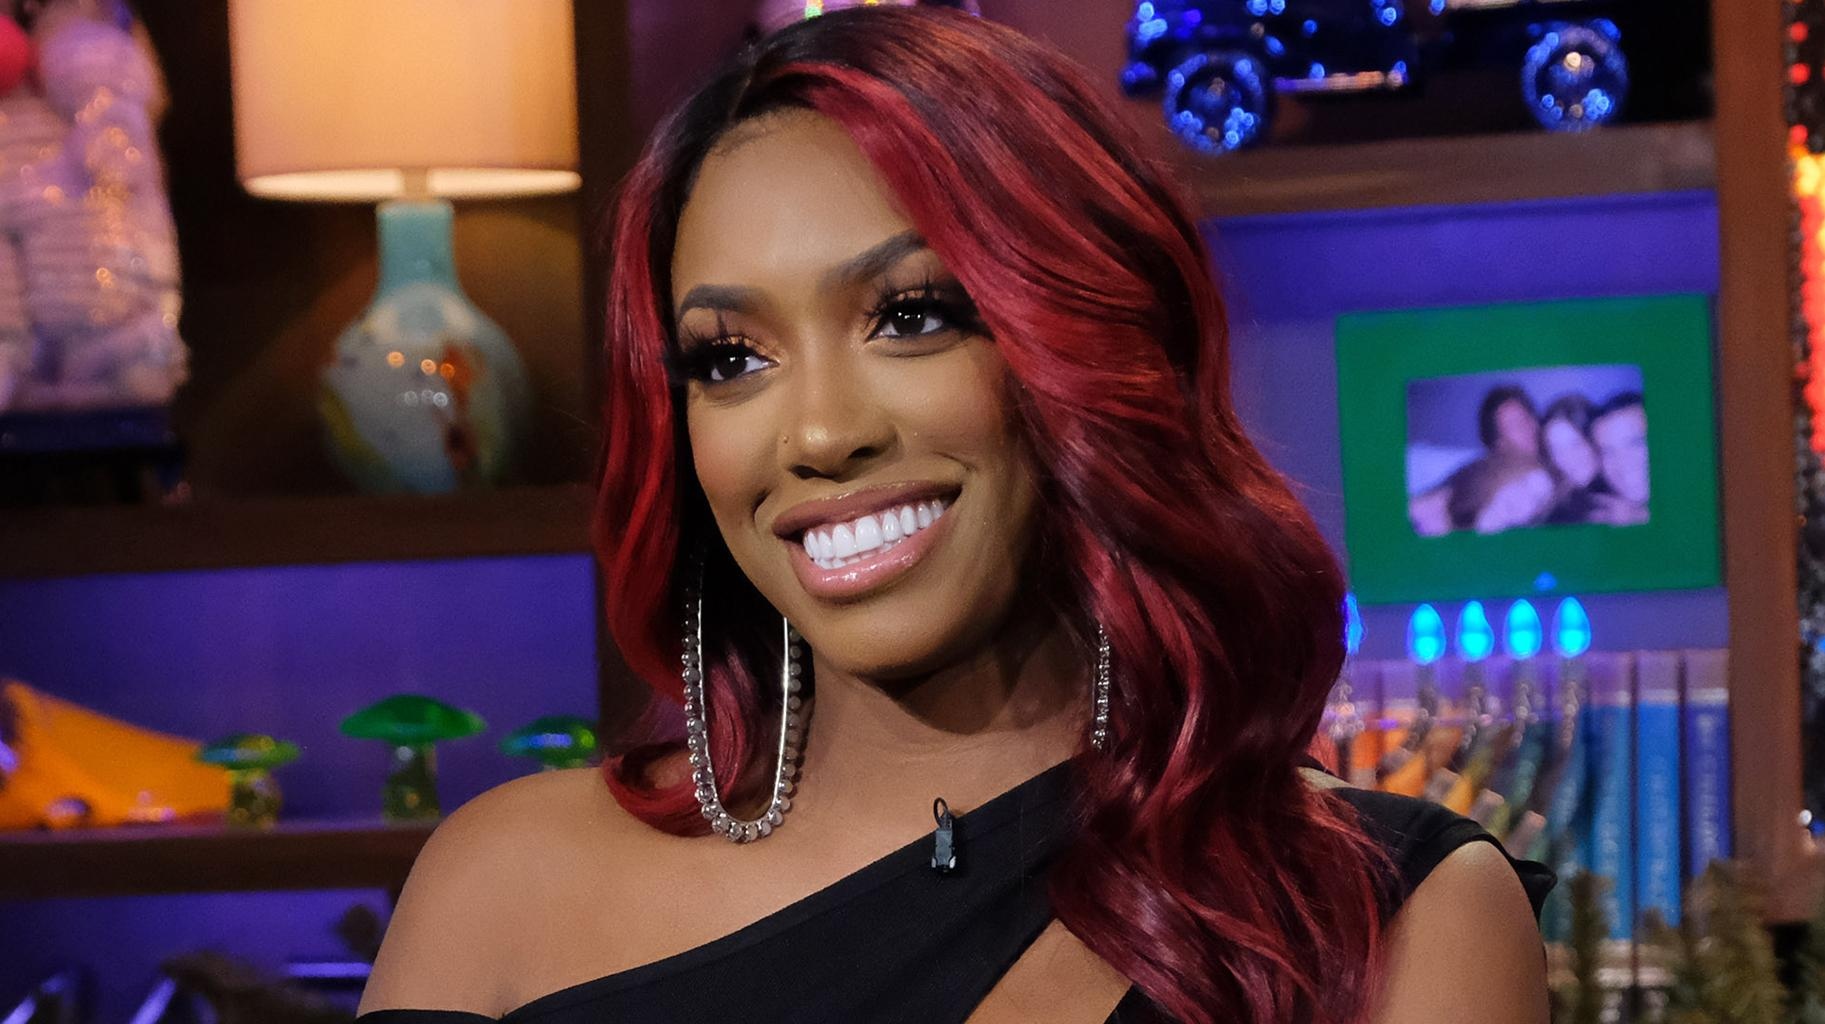 Porsha Williams Is Having The Time Of Her Life With Her Family - Check Out The Sweet Videos